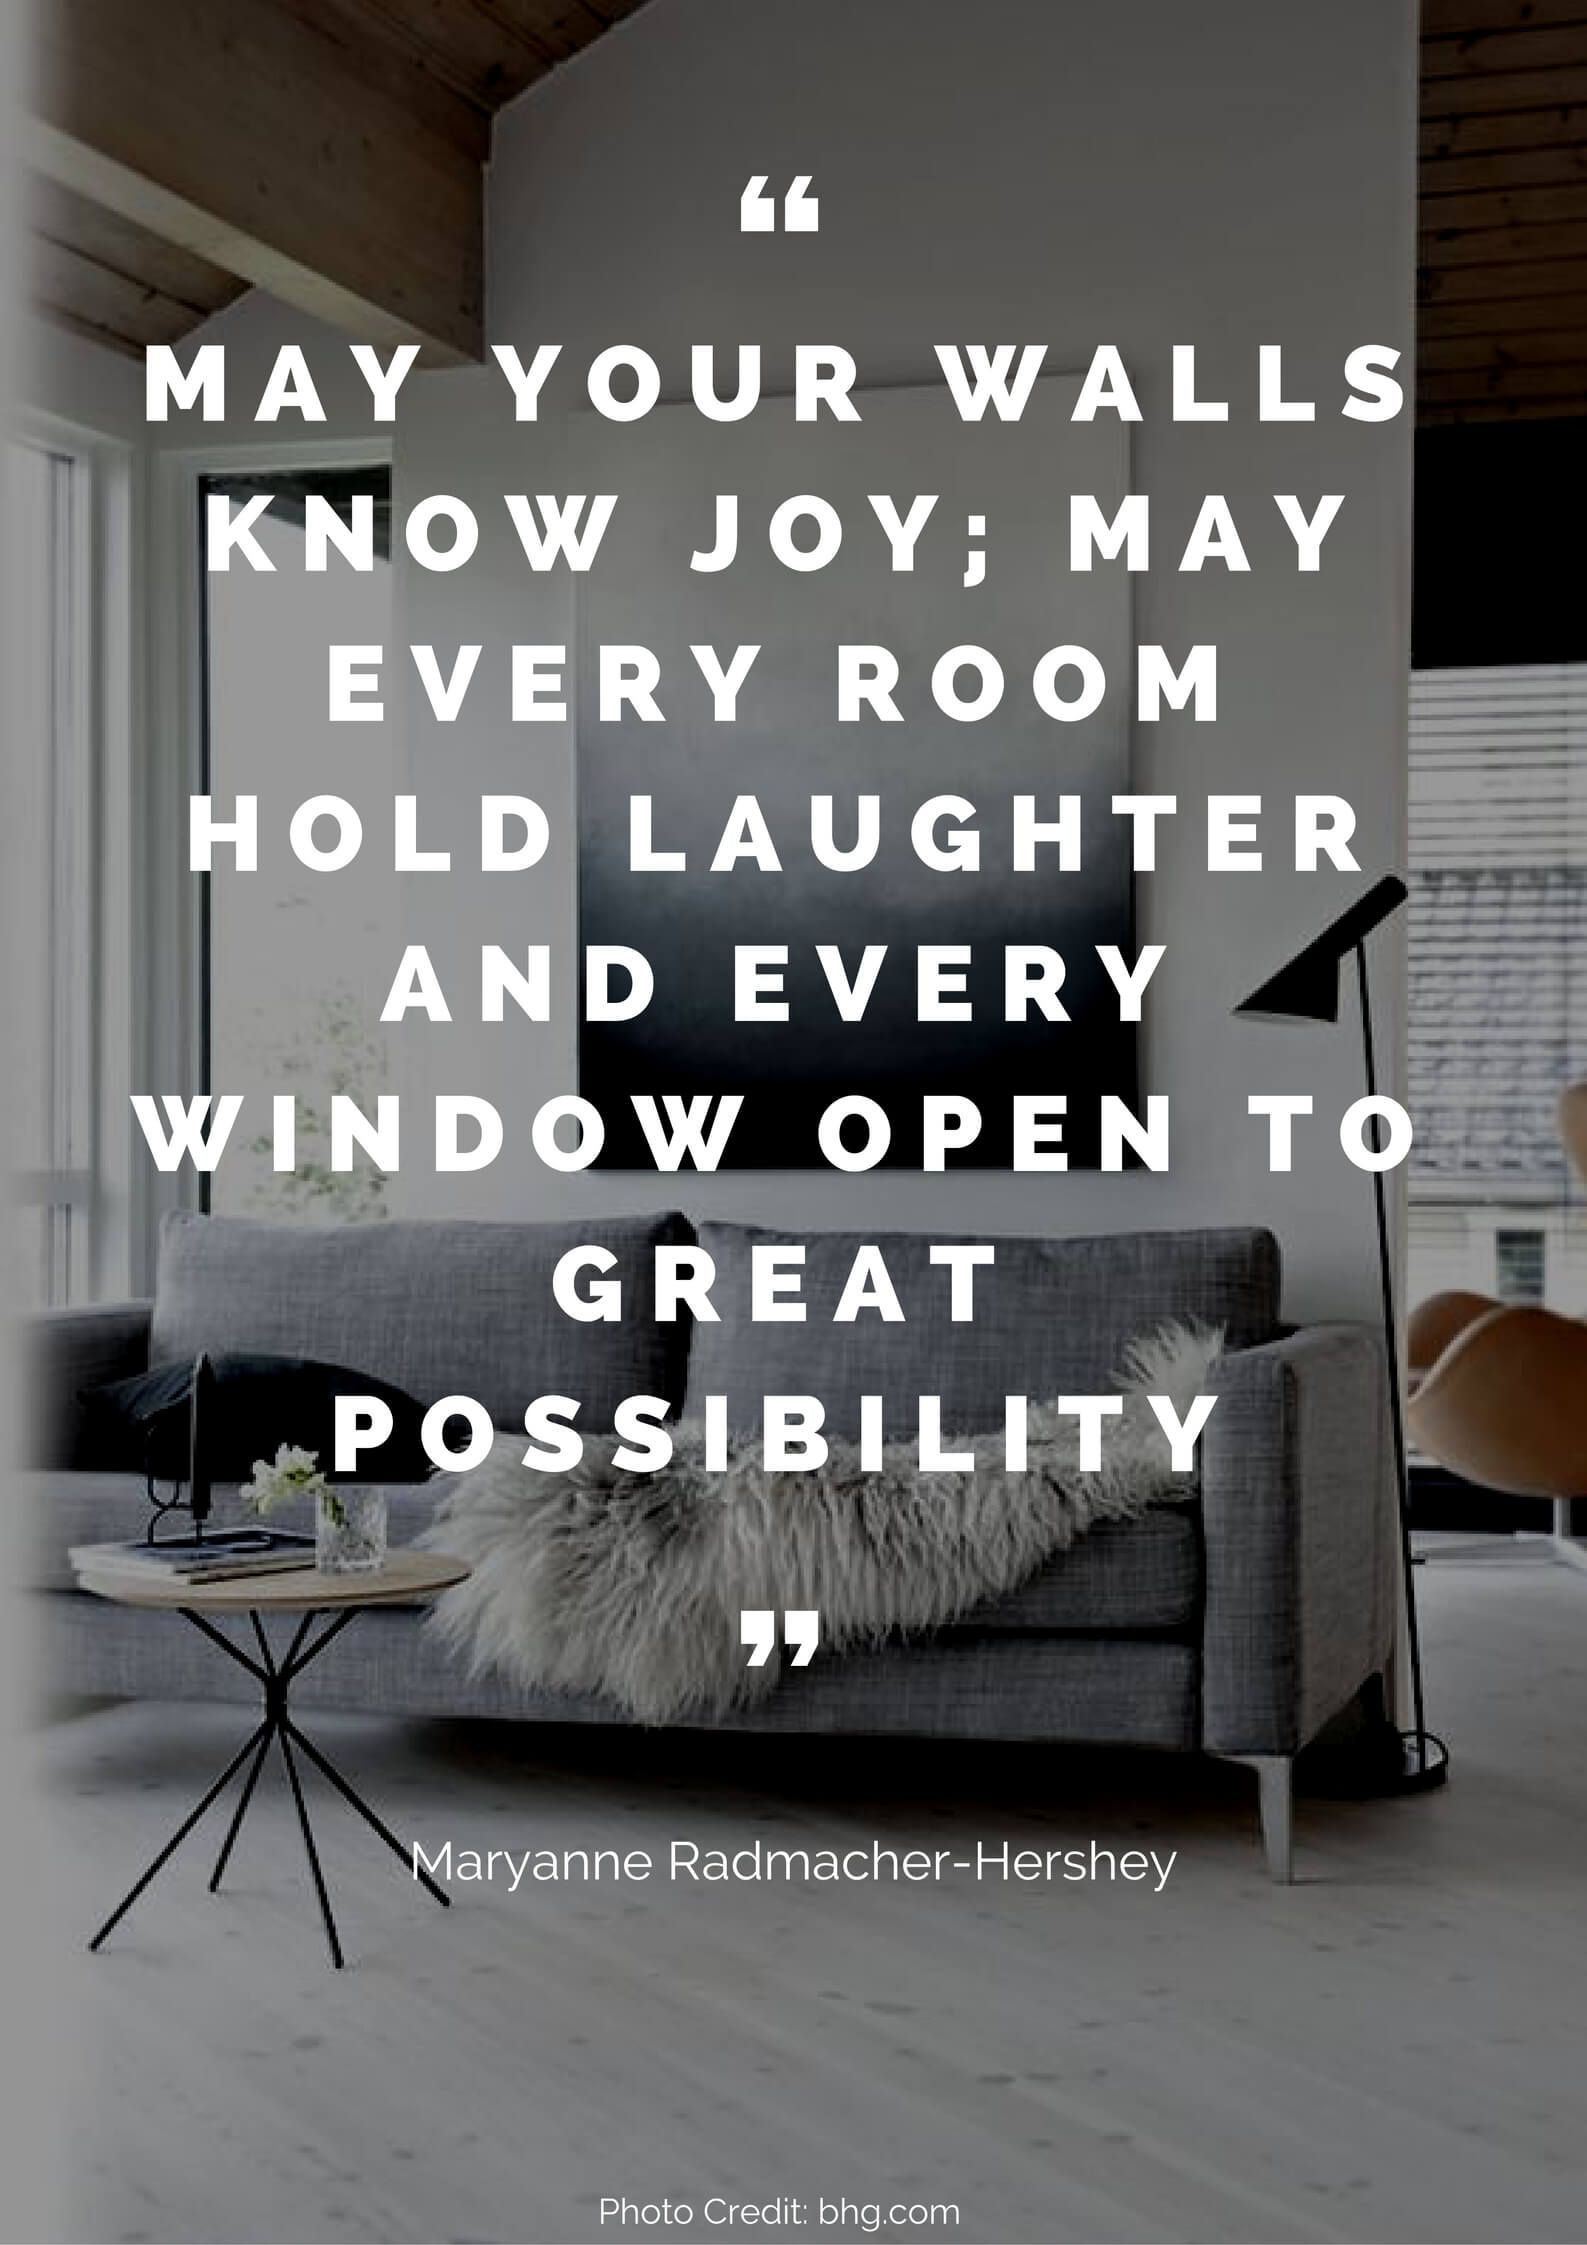 36 Beautiful Quotes About Home | New home quotes, Interior ...